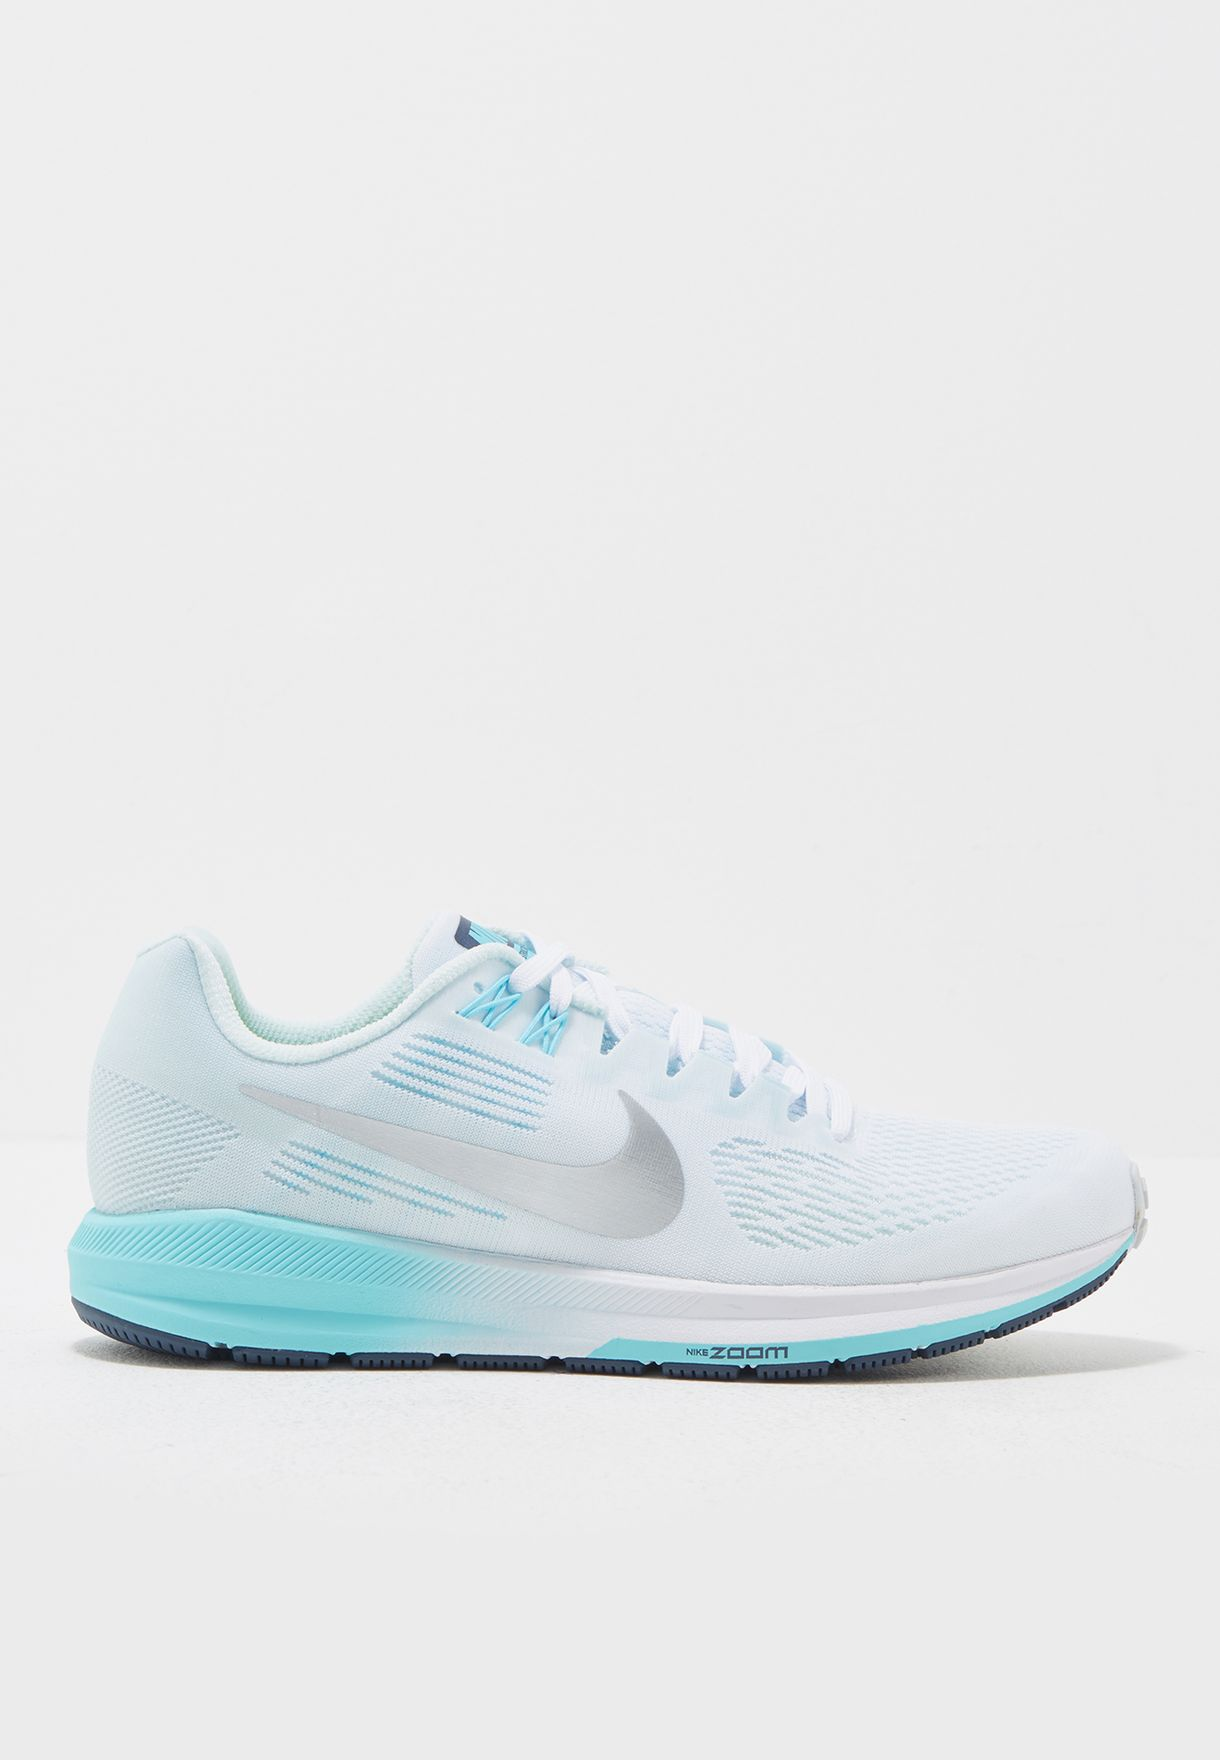 4b3b0ef3d9 Shop Nike W Air Zoom Structure 904701 104 for Donna in UAE 21 bianca ...